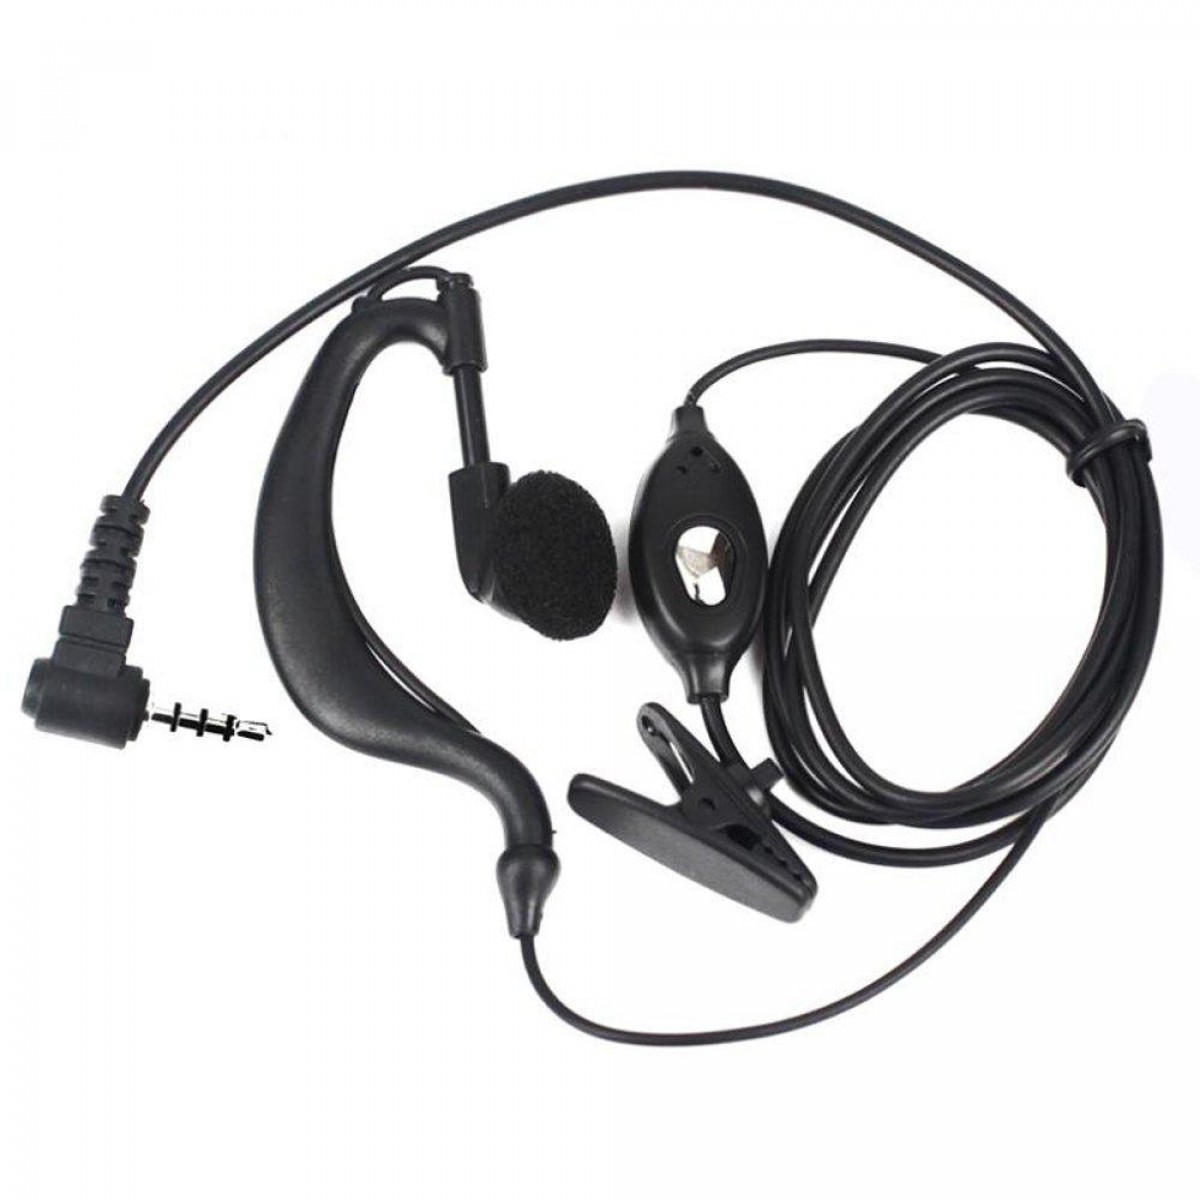 HANDS FREE BAOFENG BF-T1